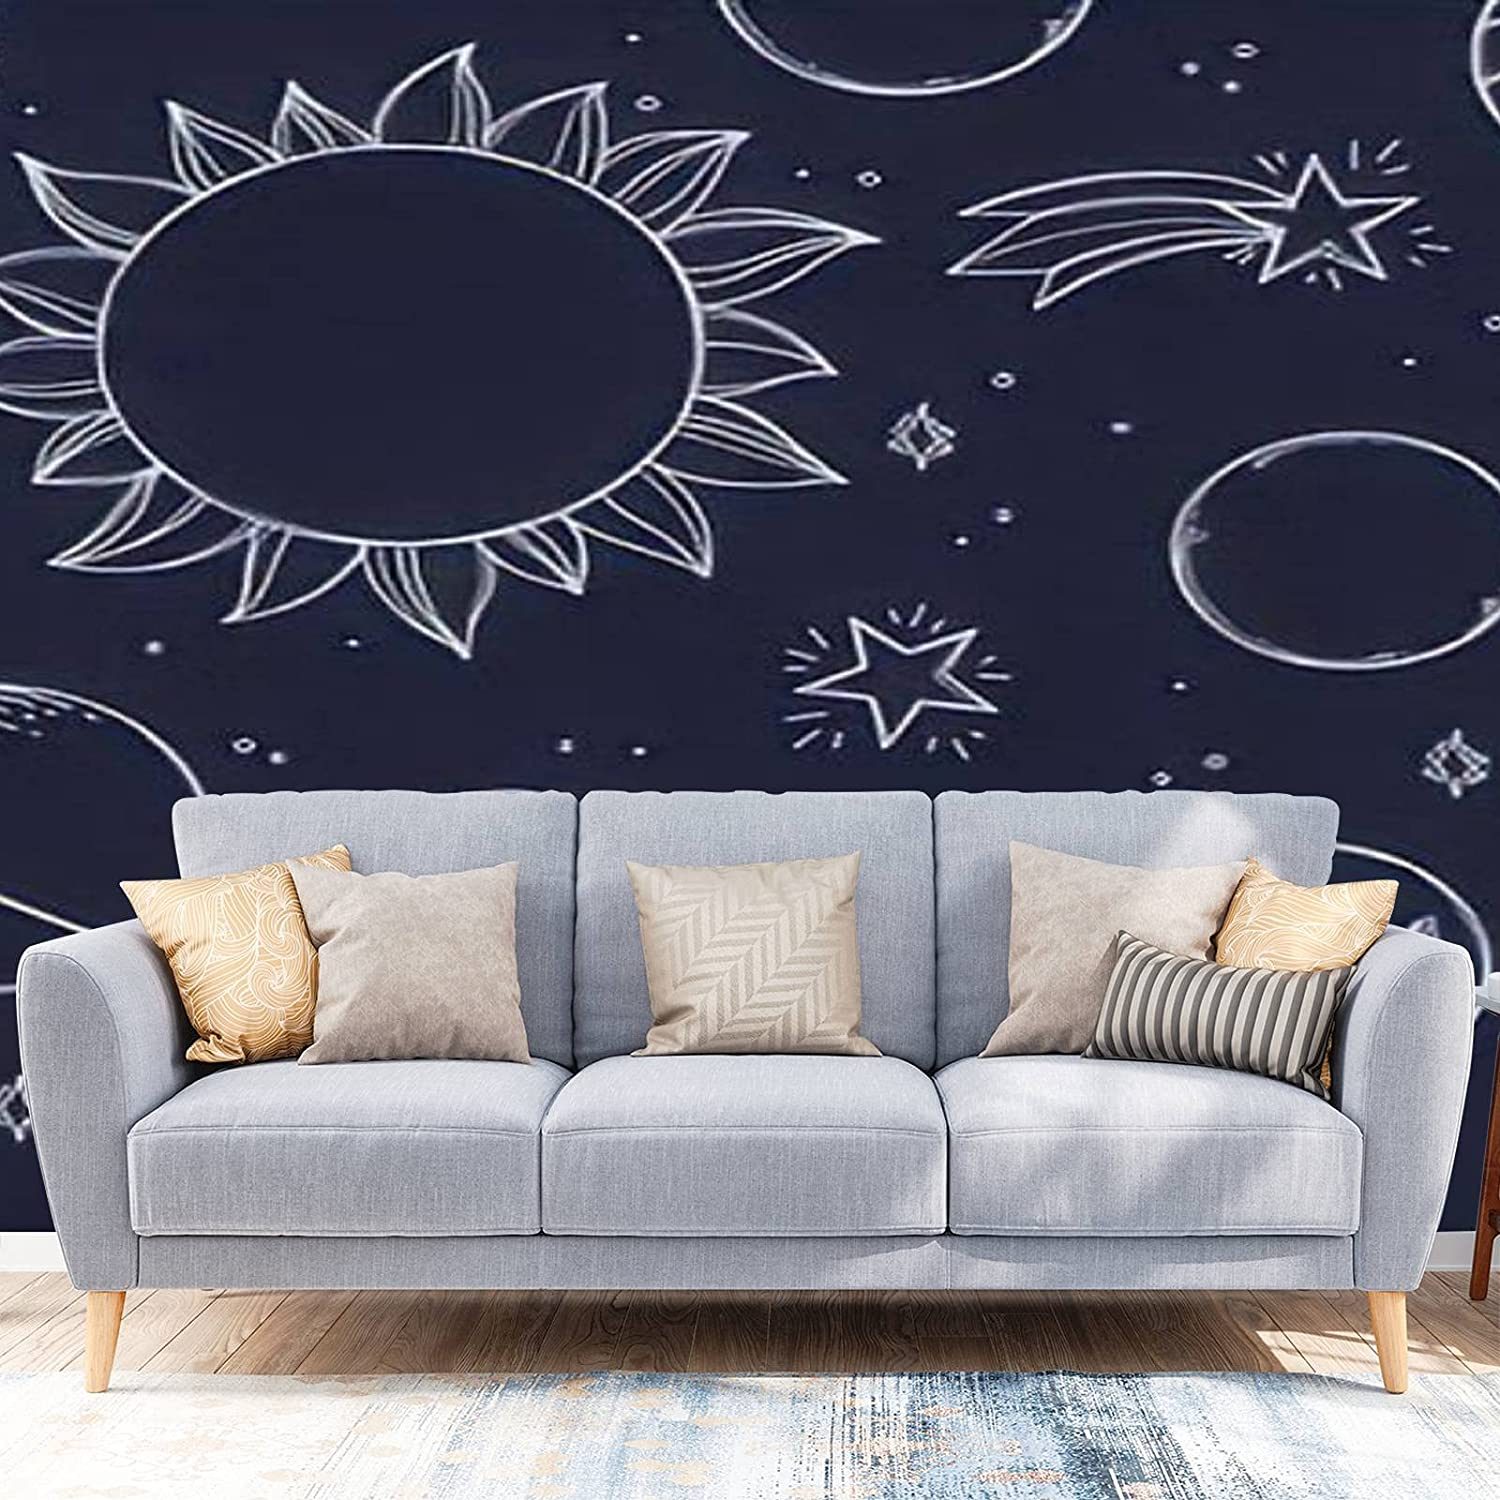 Wallpaper Peel Max 58% OFF and Nippon regular agency Stick Space Drawn Background Hand Illustratio